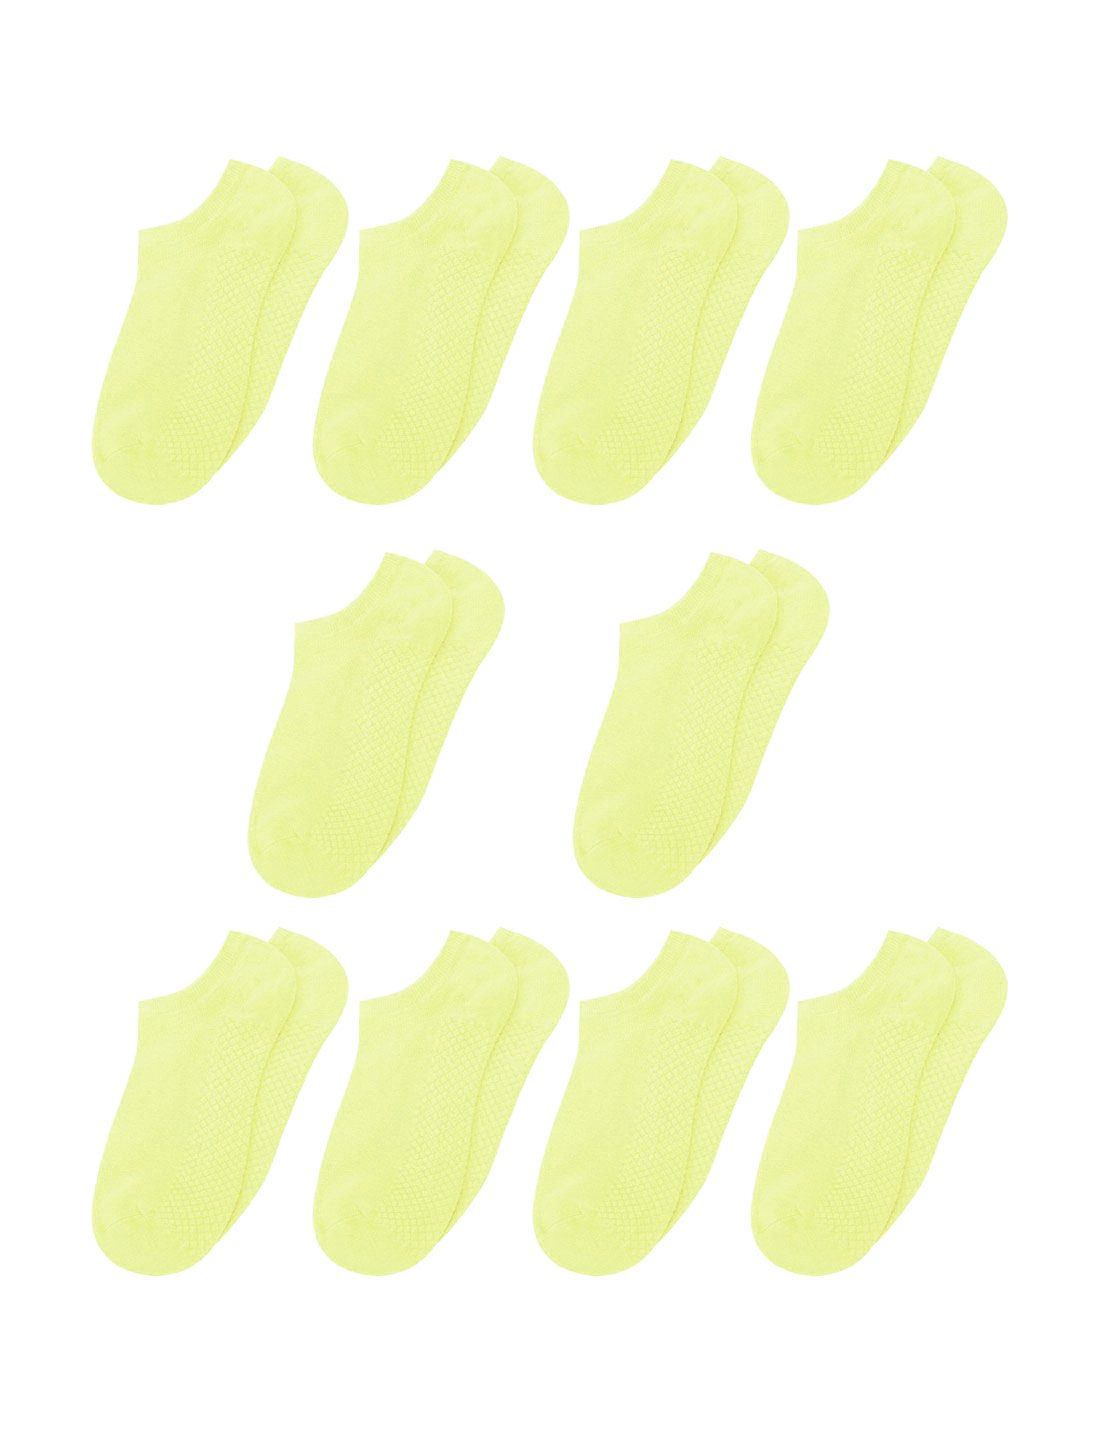 Women Low Cut Textured Sole Ankle Socks 10 Pairs Yellow